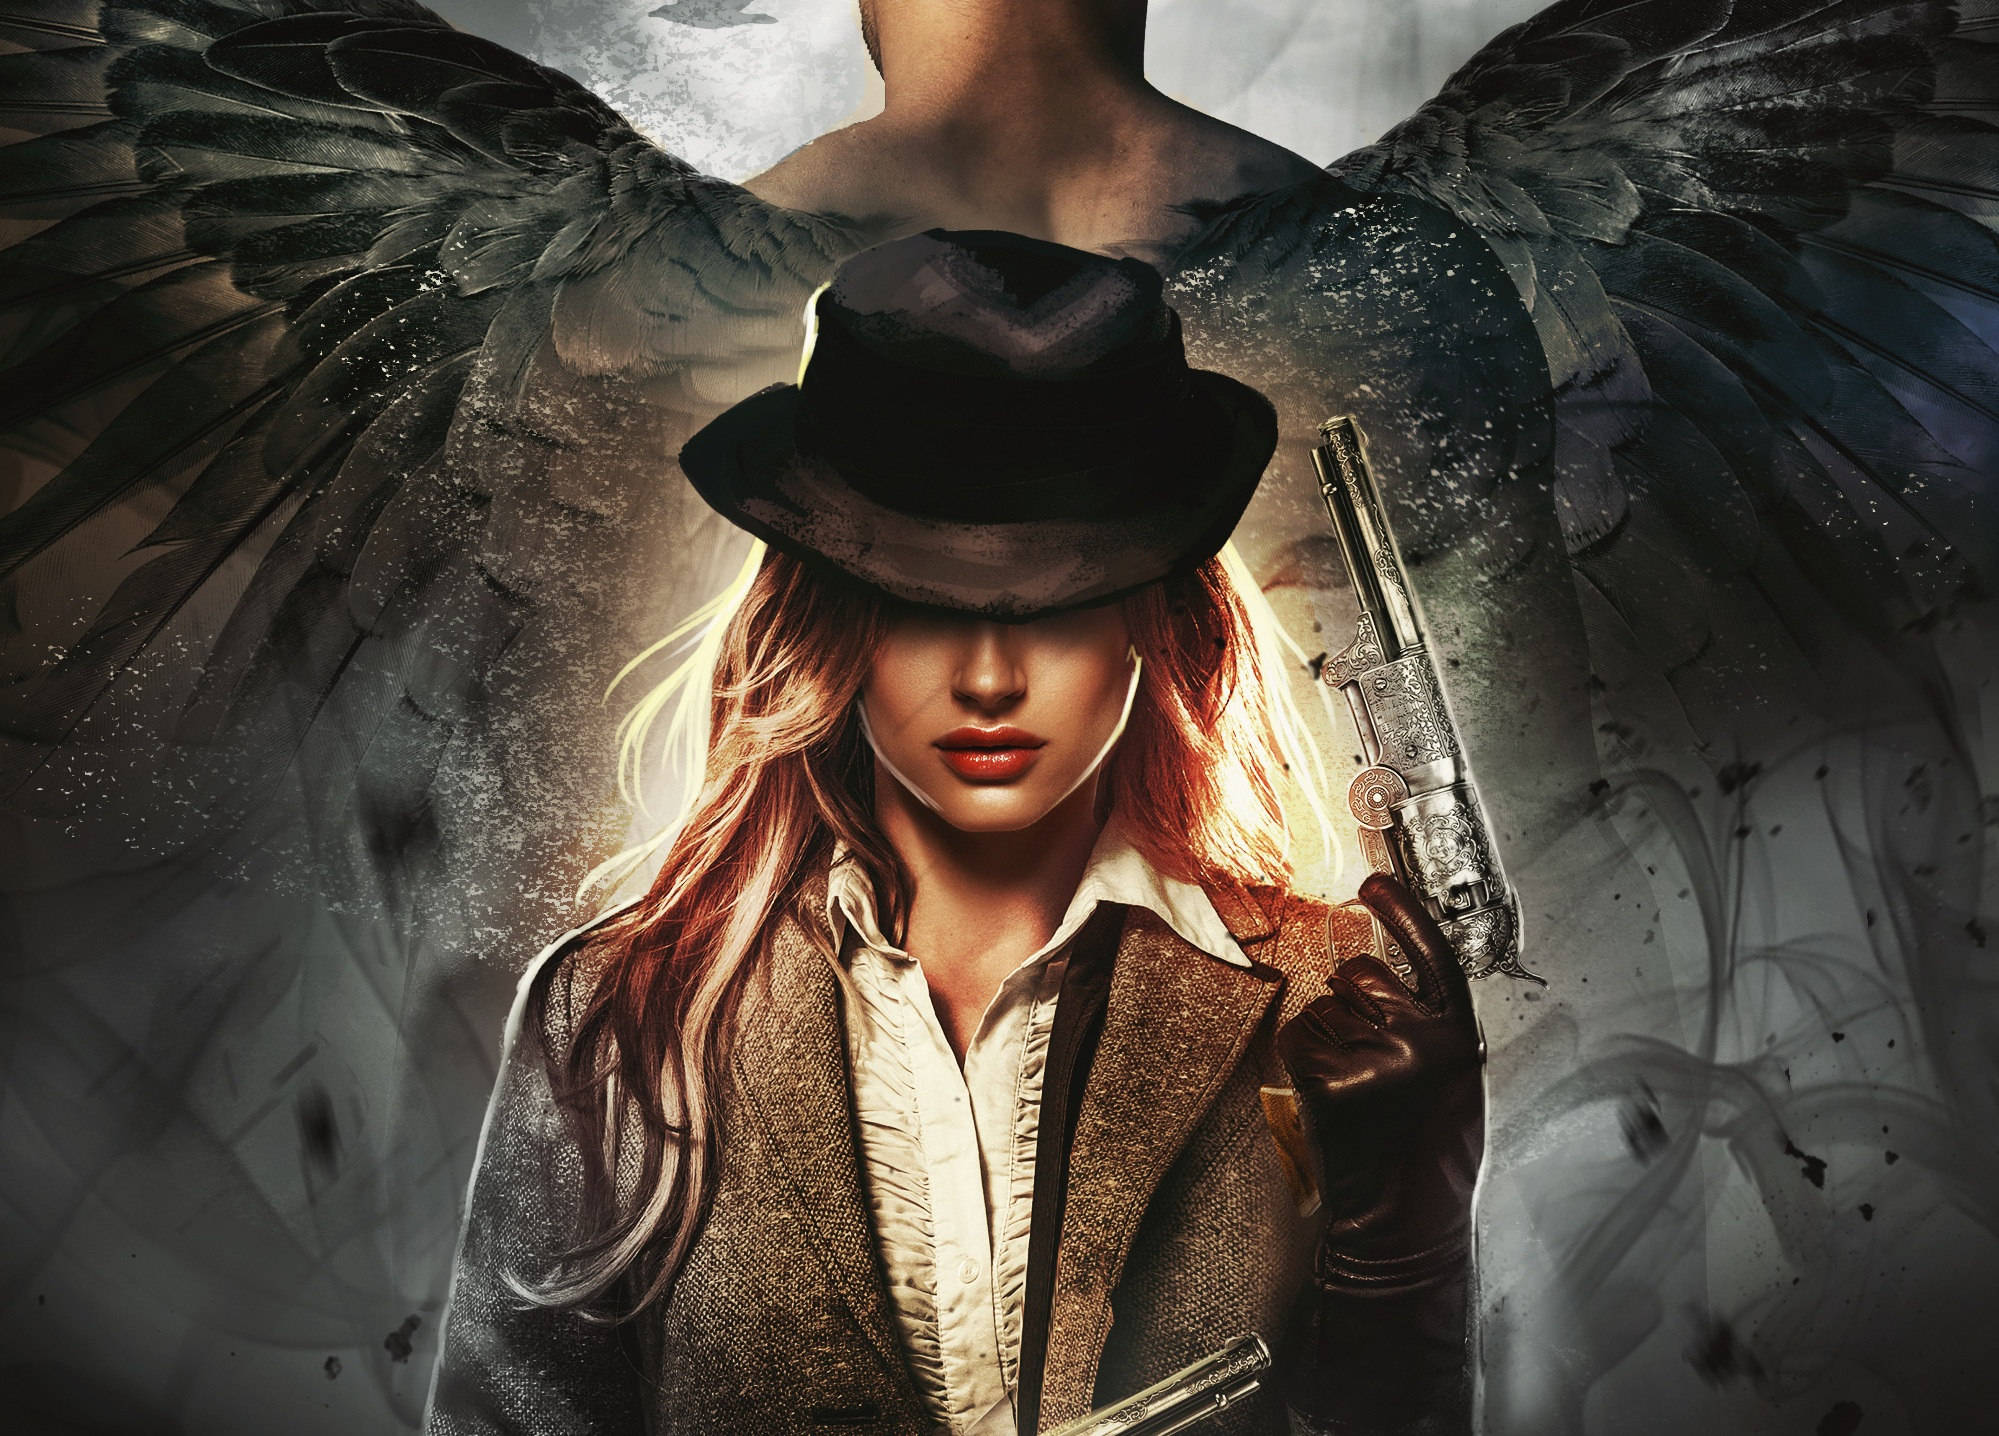 THE DEVIL'S ANGEL SERIES - Worlds burn in this dark fantasy adventure of a gunslinger and the devil she hates to love.